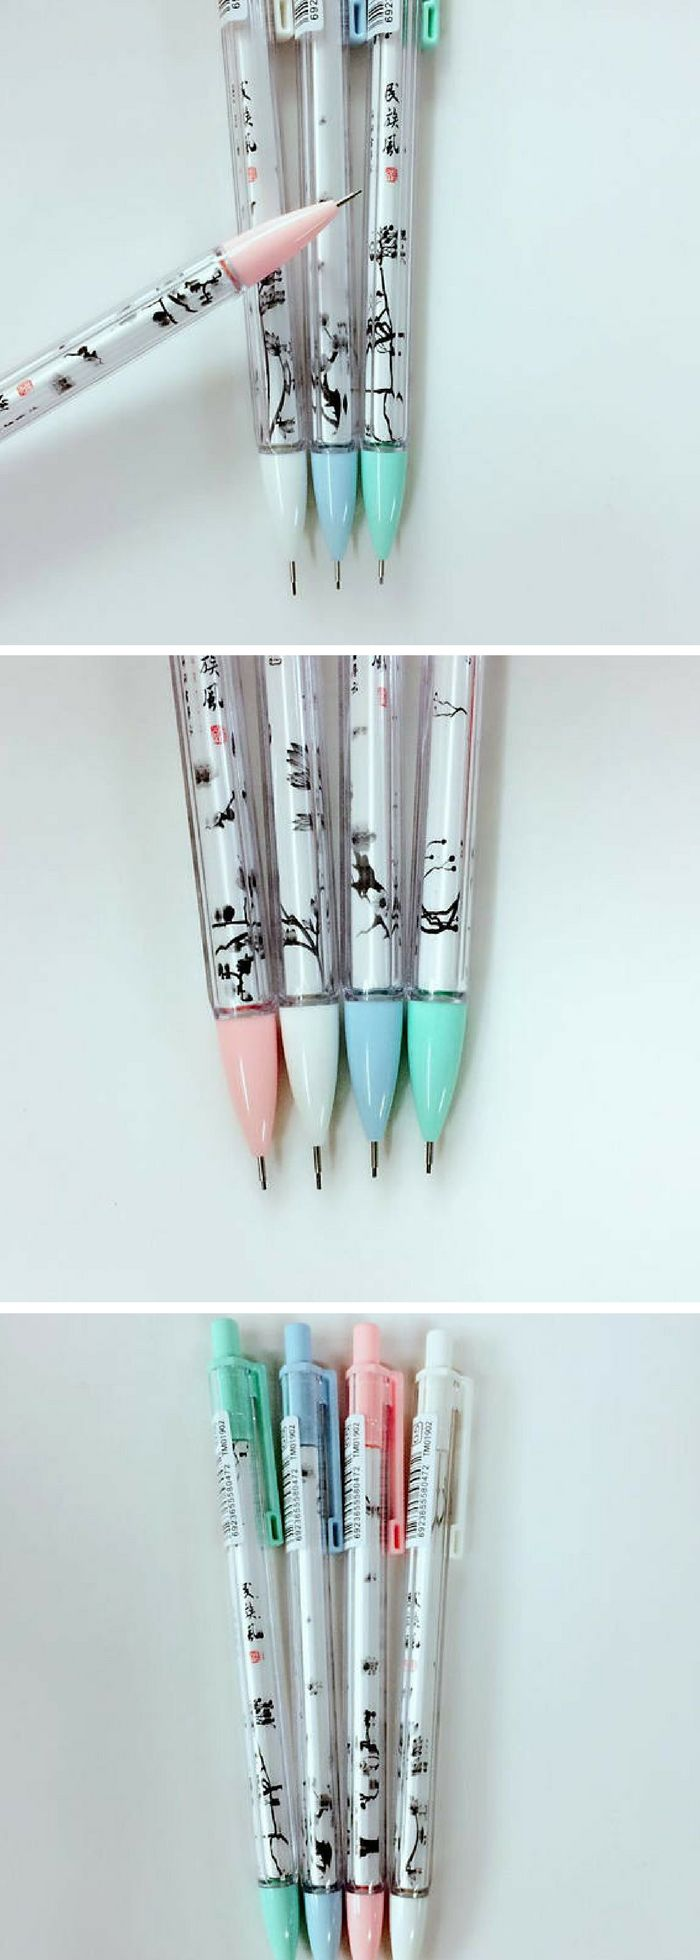 Found on Etsy! Cute sakura cherry blossom print mechanical pencils for fans of kawaii Japanese stationery! #ad #sakura #kawaii #stationery